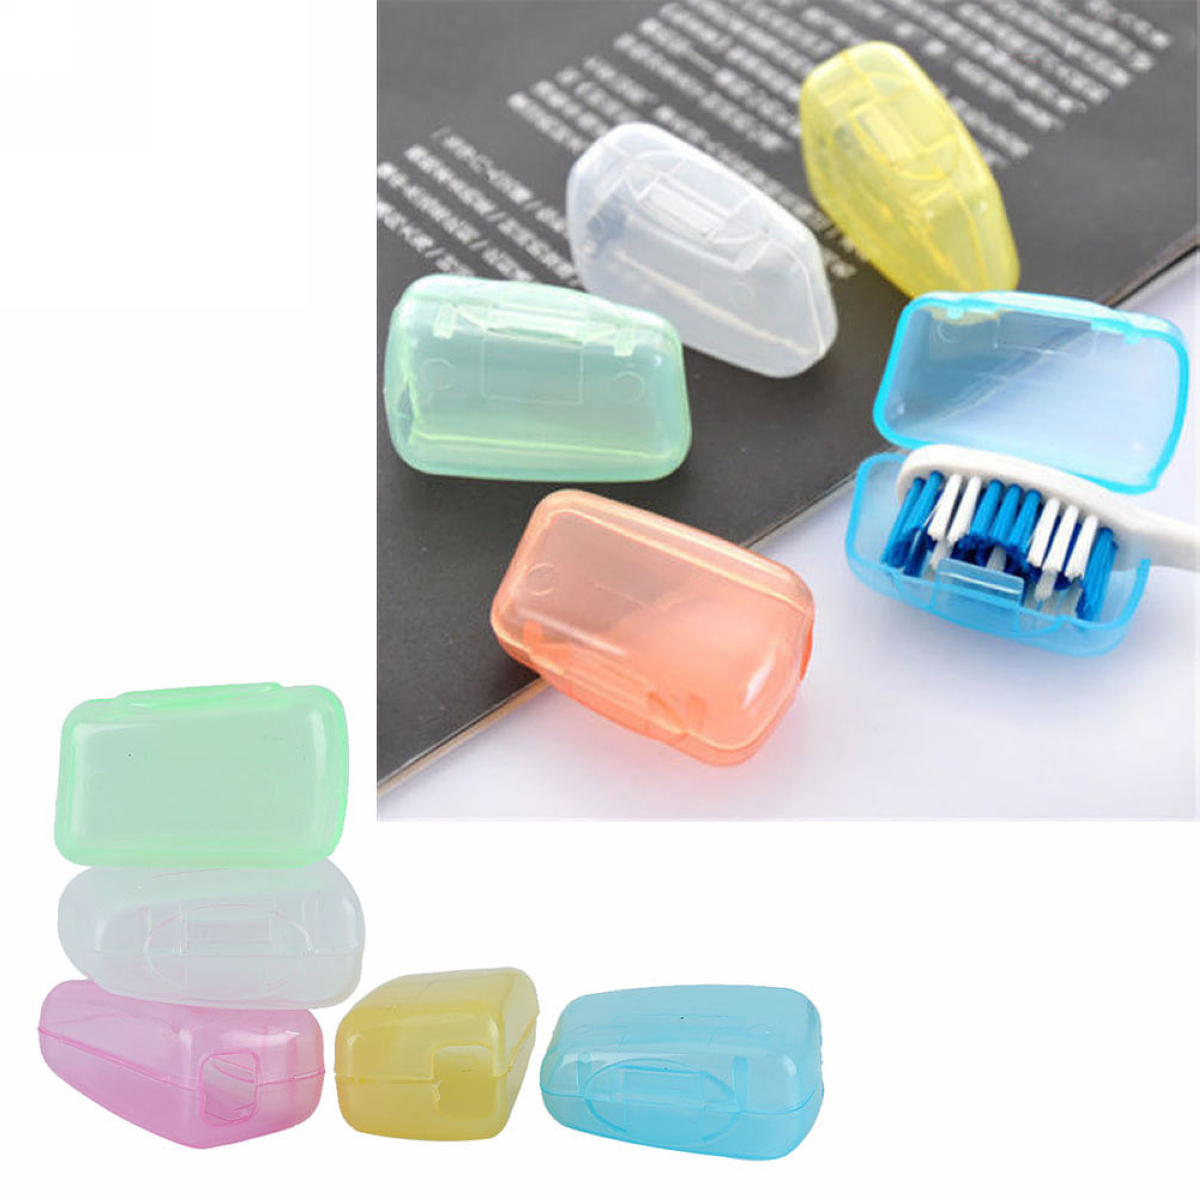 10pcs/Set Portable Travel Toothbrush Head Cover Case Protective Caps Health  Germproof Wash Toilet Supplies-in Bathroom Accessories Sets from Home &